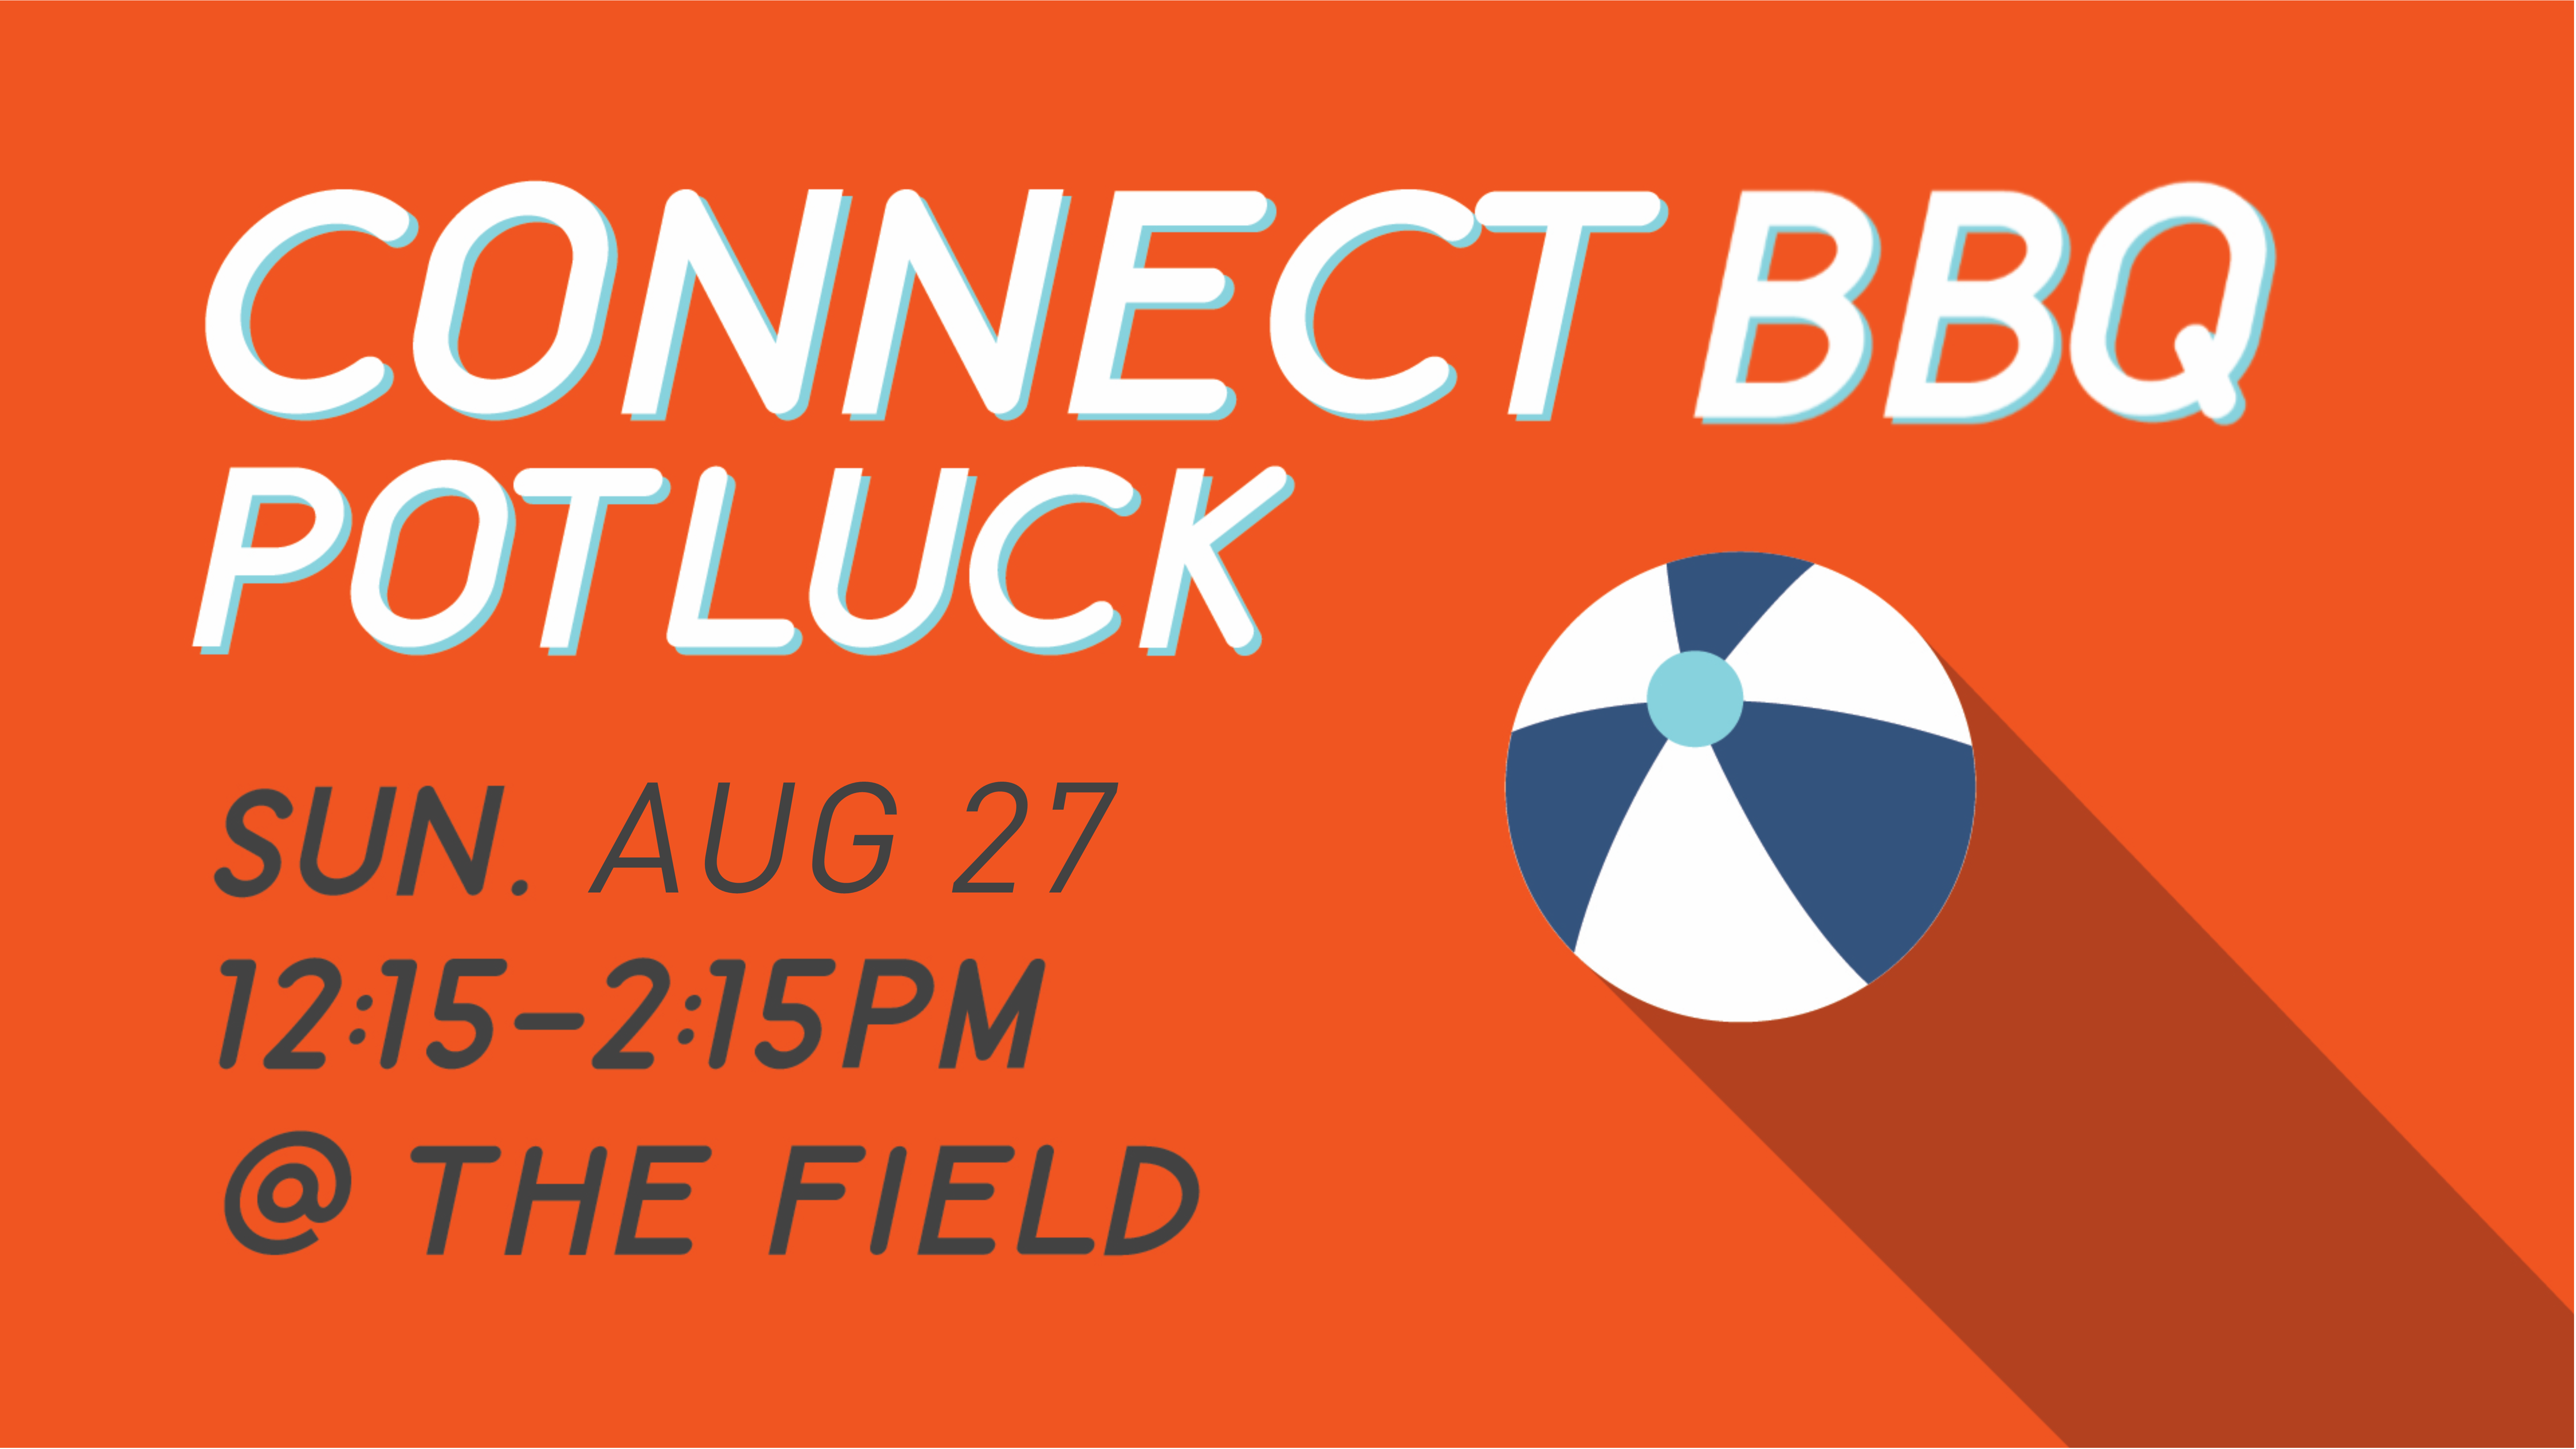 Connect bbq and potluck aug 27